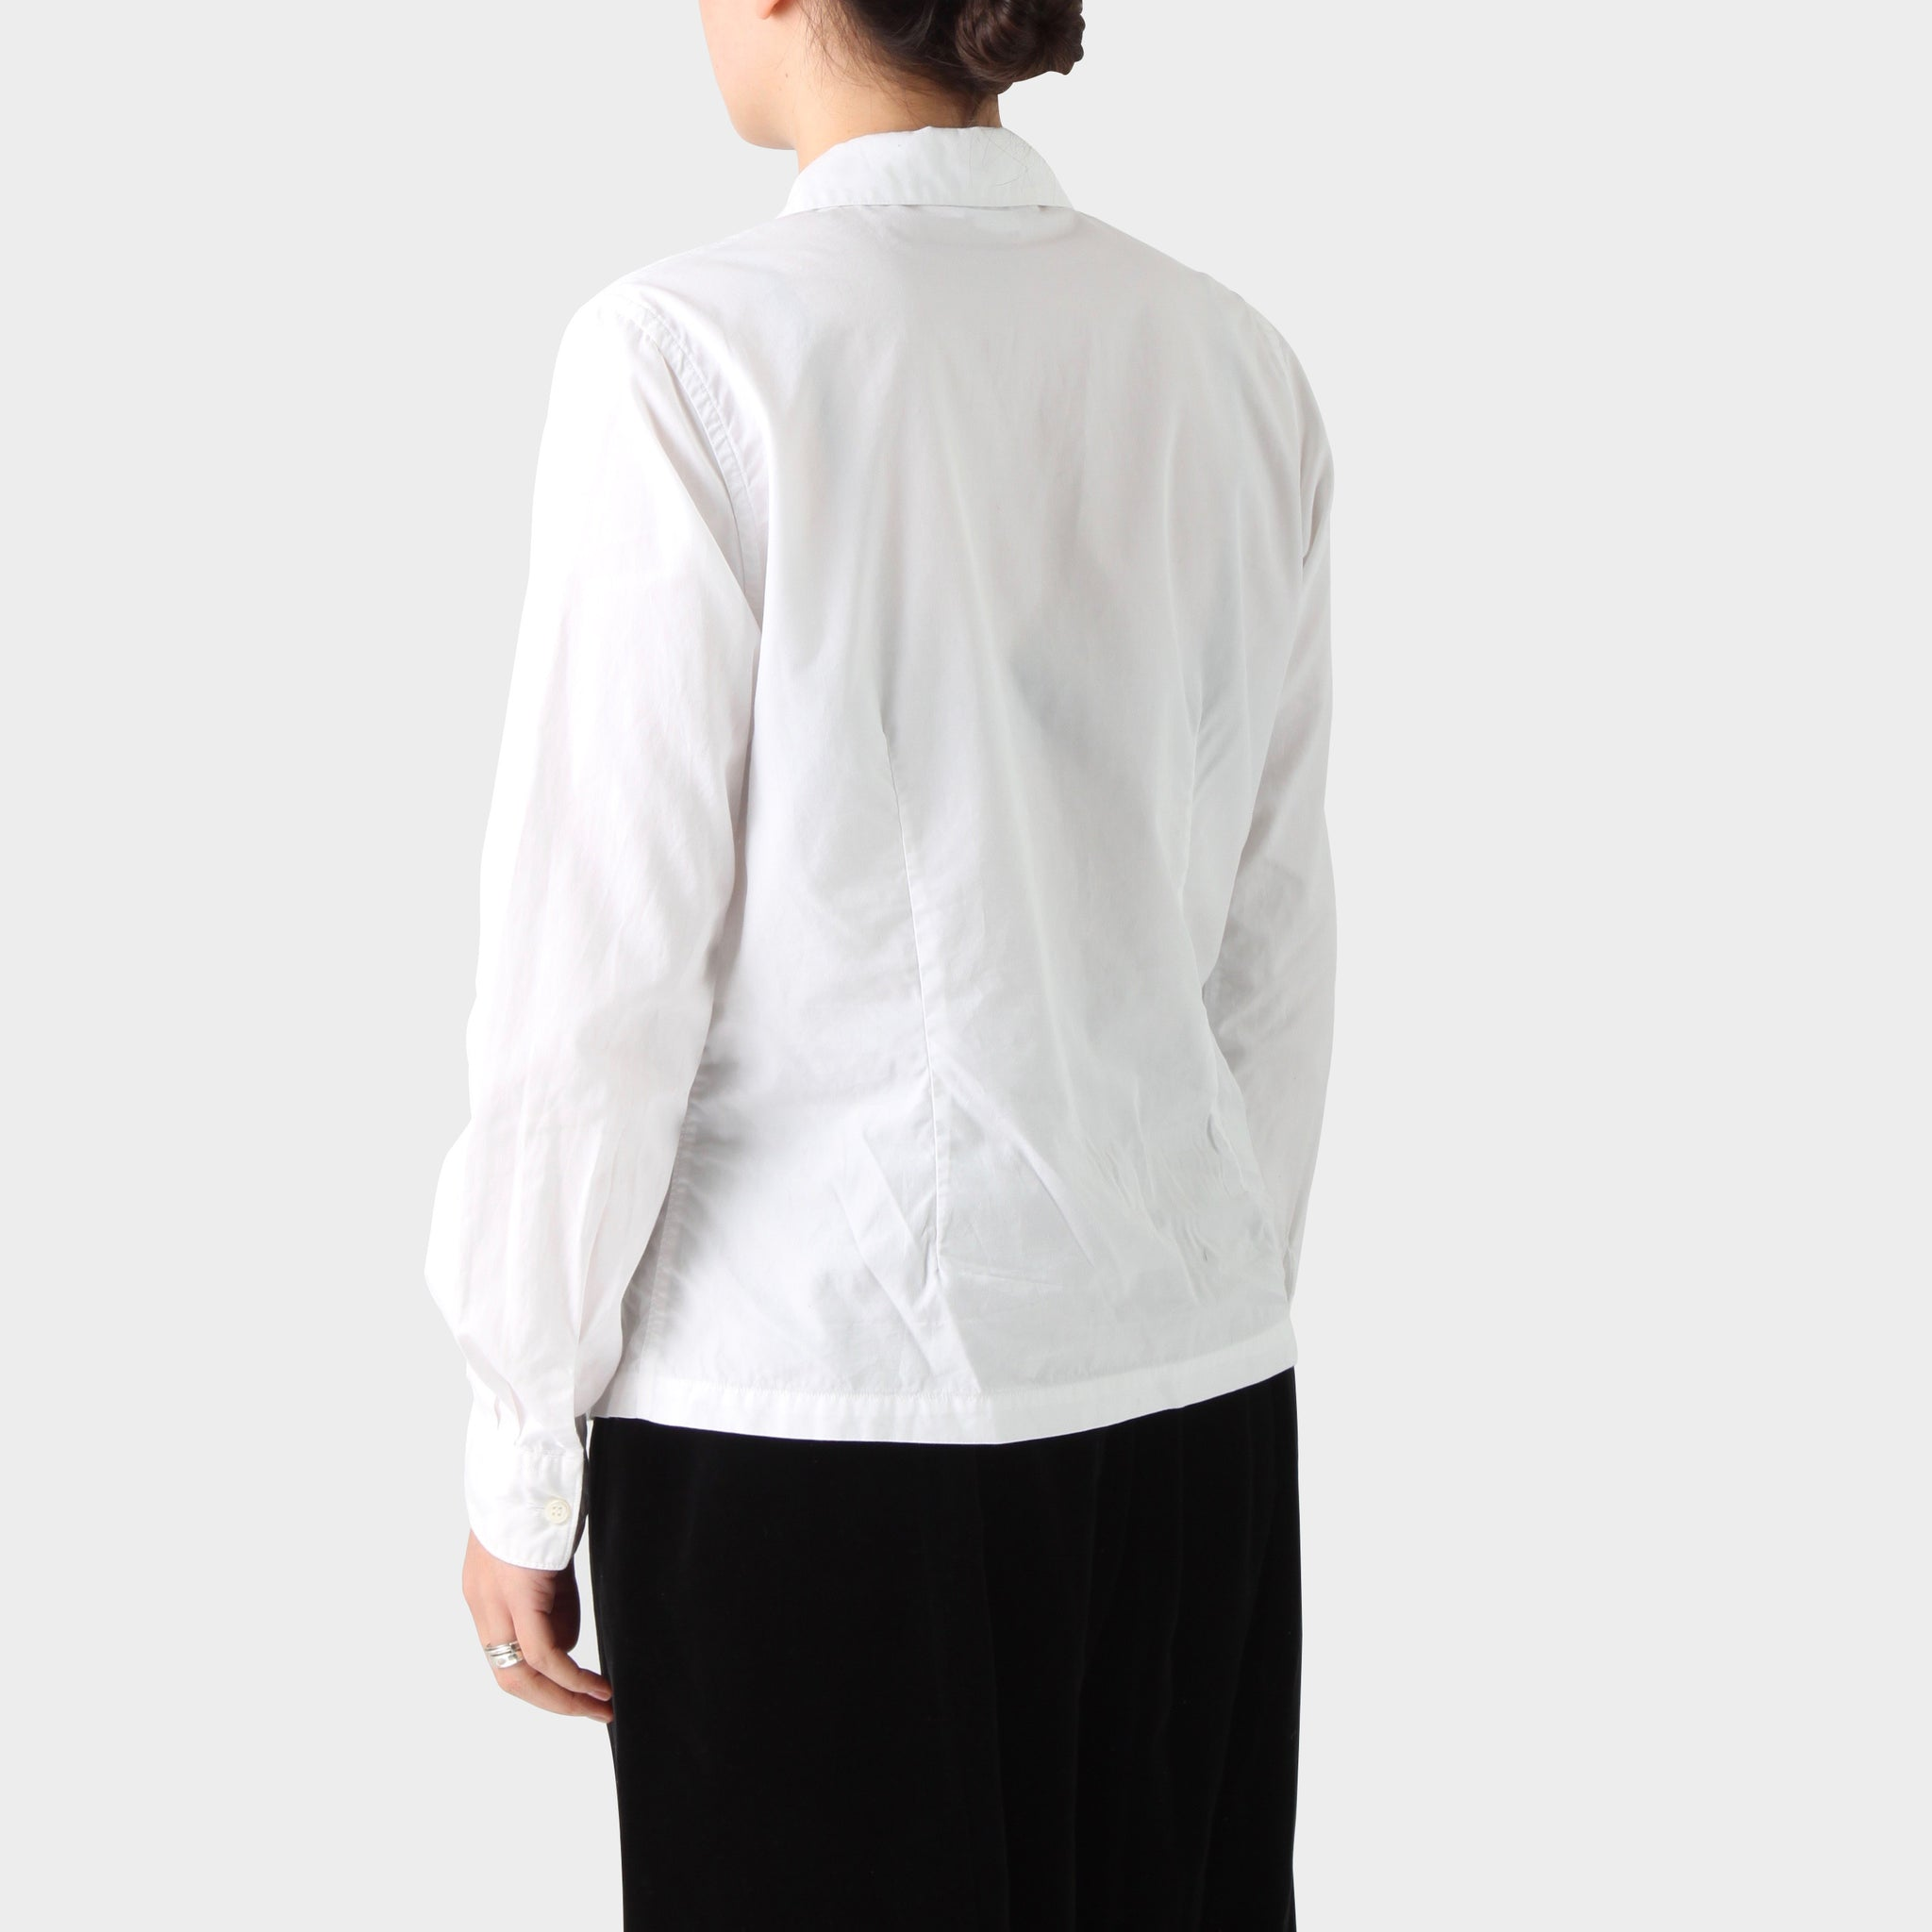 Comme des Garçons White Cotton Peter Pan Collar Shirt